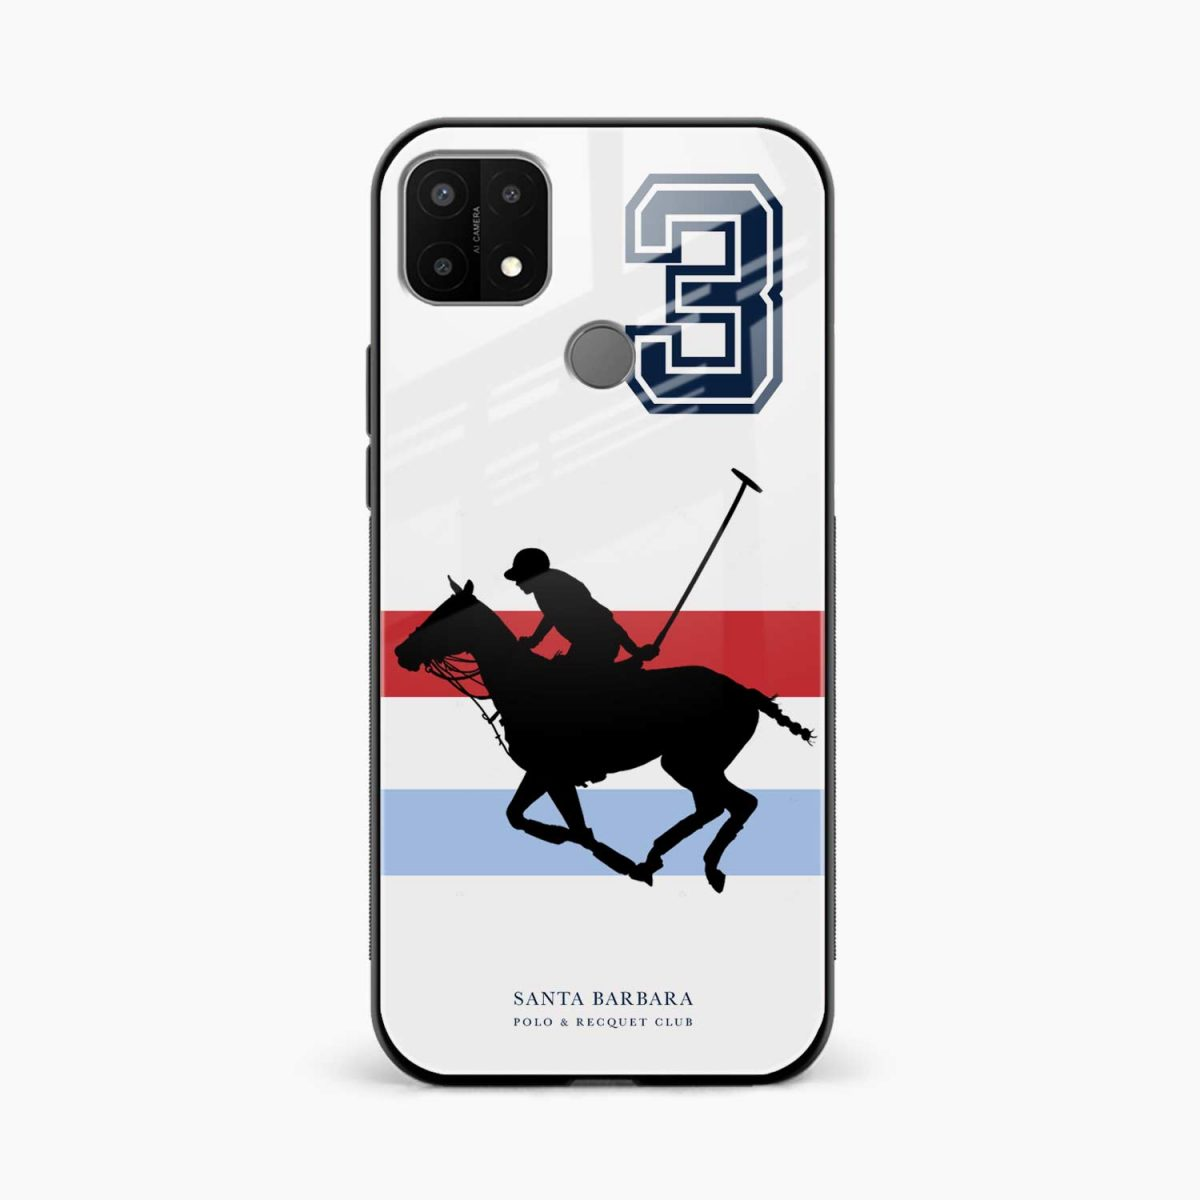 sant barbara polo front view oppo a15 back cover